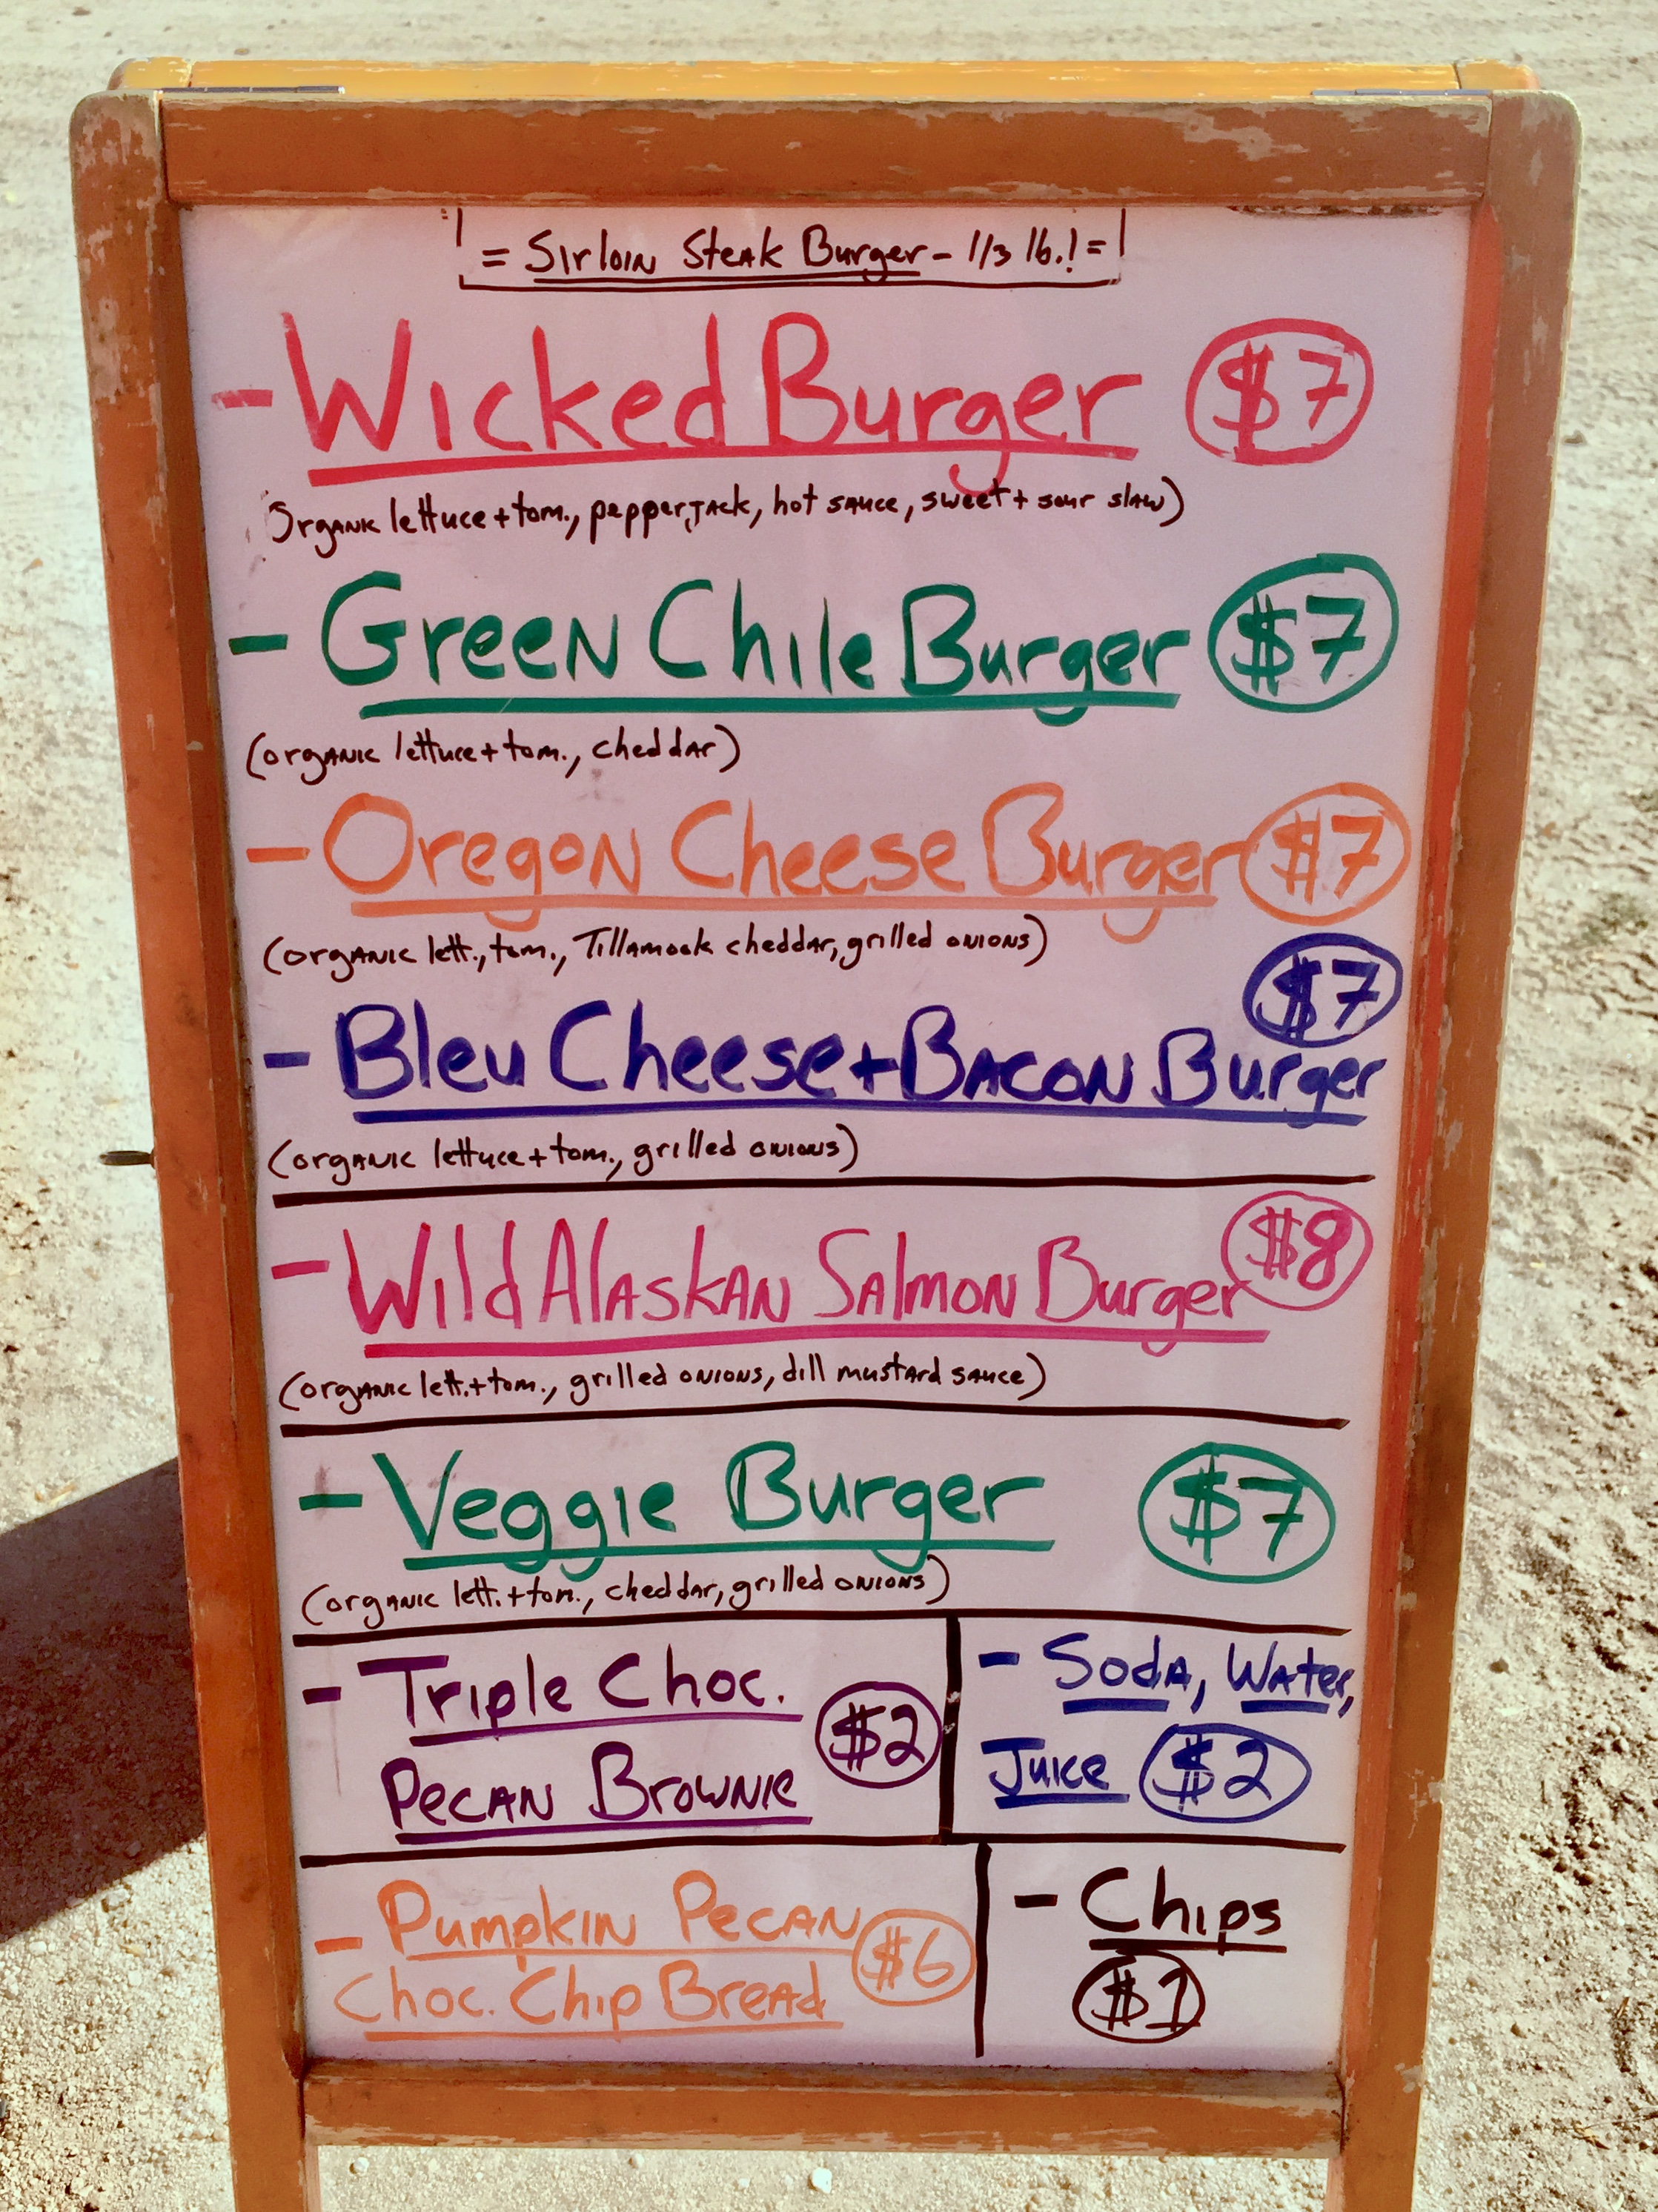 If you're a burger lover traveling around Southern Arizona, be sure to check out Wicked Burgers, a gourmet food truck based out of Dragoon, Arizona. Their sirloin steak burgers are Doodle-approved by Bernie and Lizzie McSquare! #McSquareDoodles #dogfriendly #SouthernArizona #foodtruck